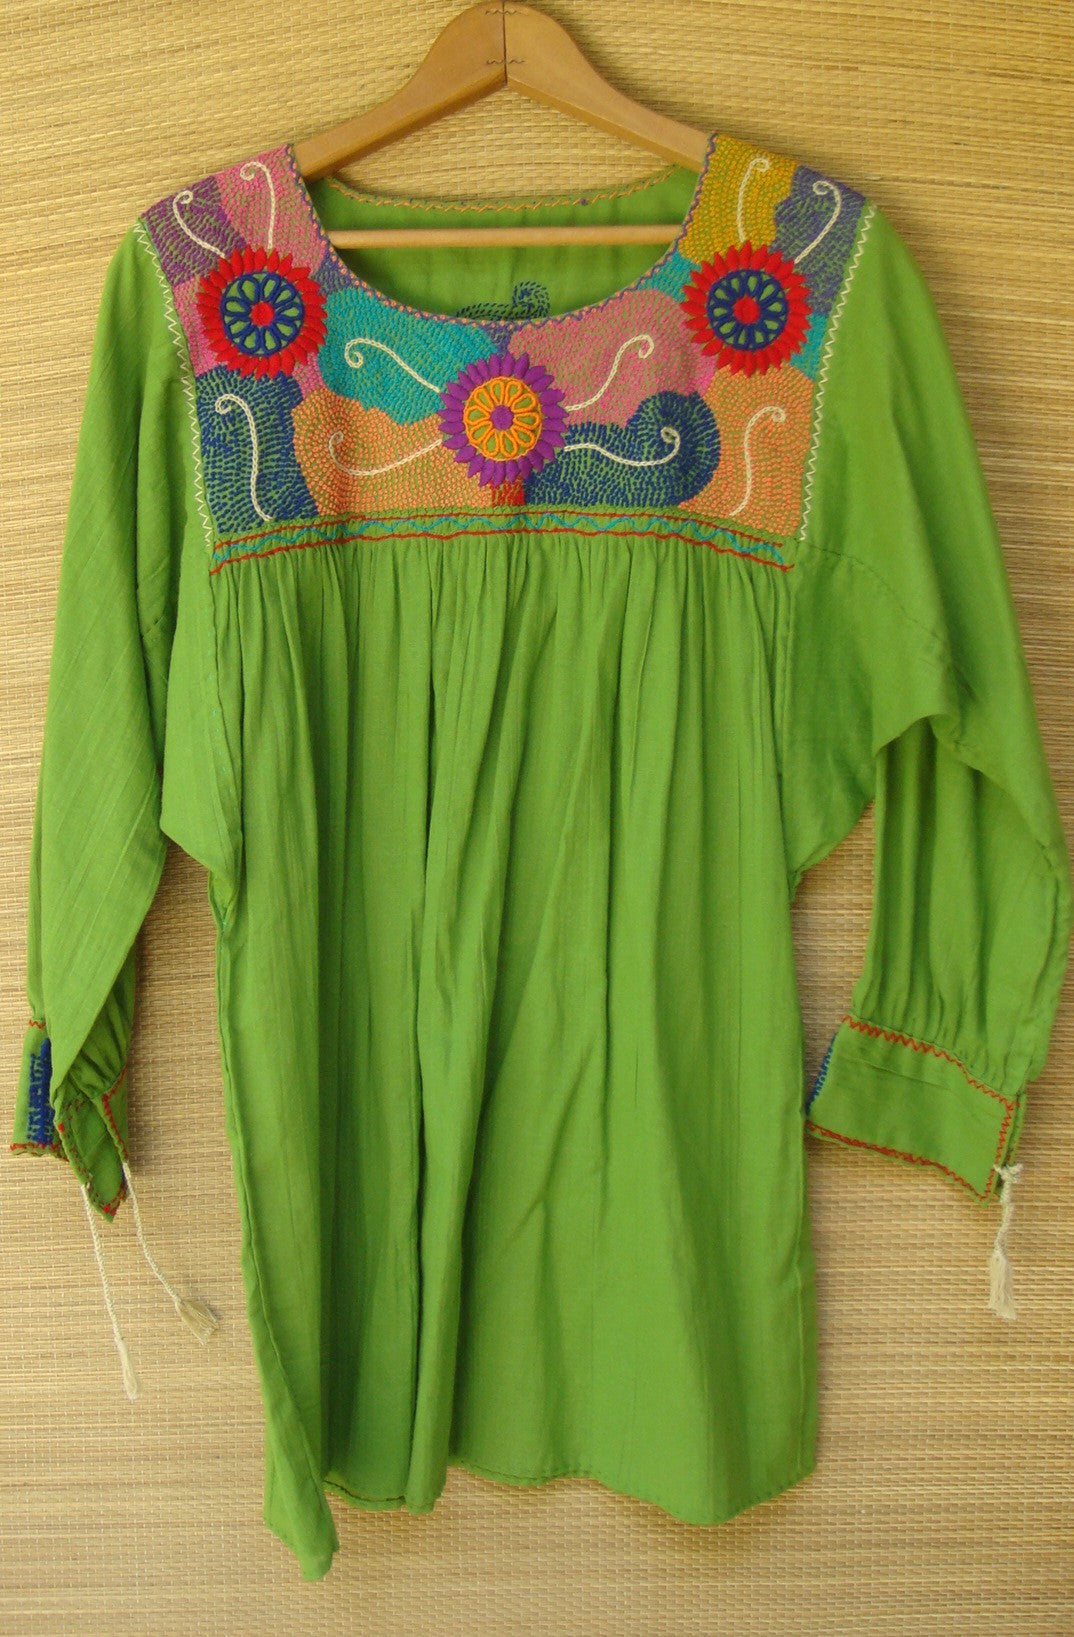 Olive Green Mexican Blouse Huipil Multicolor Embroidered Flowers Small/Medium